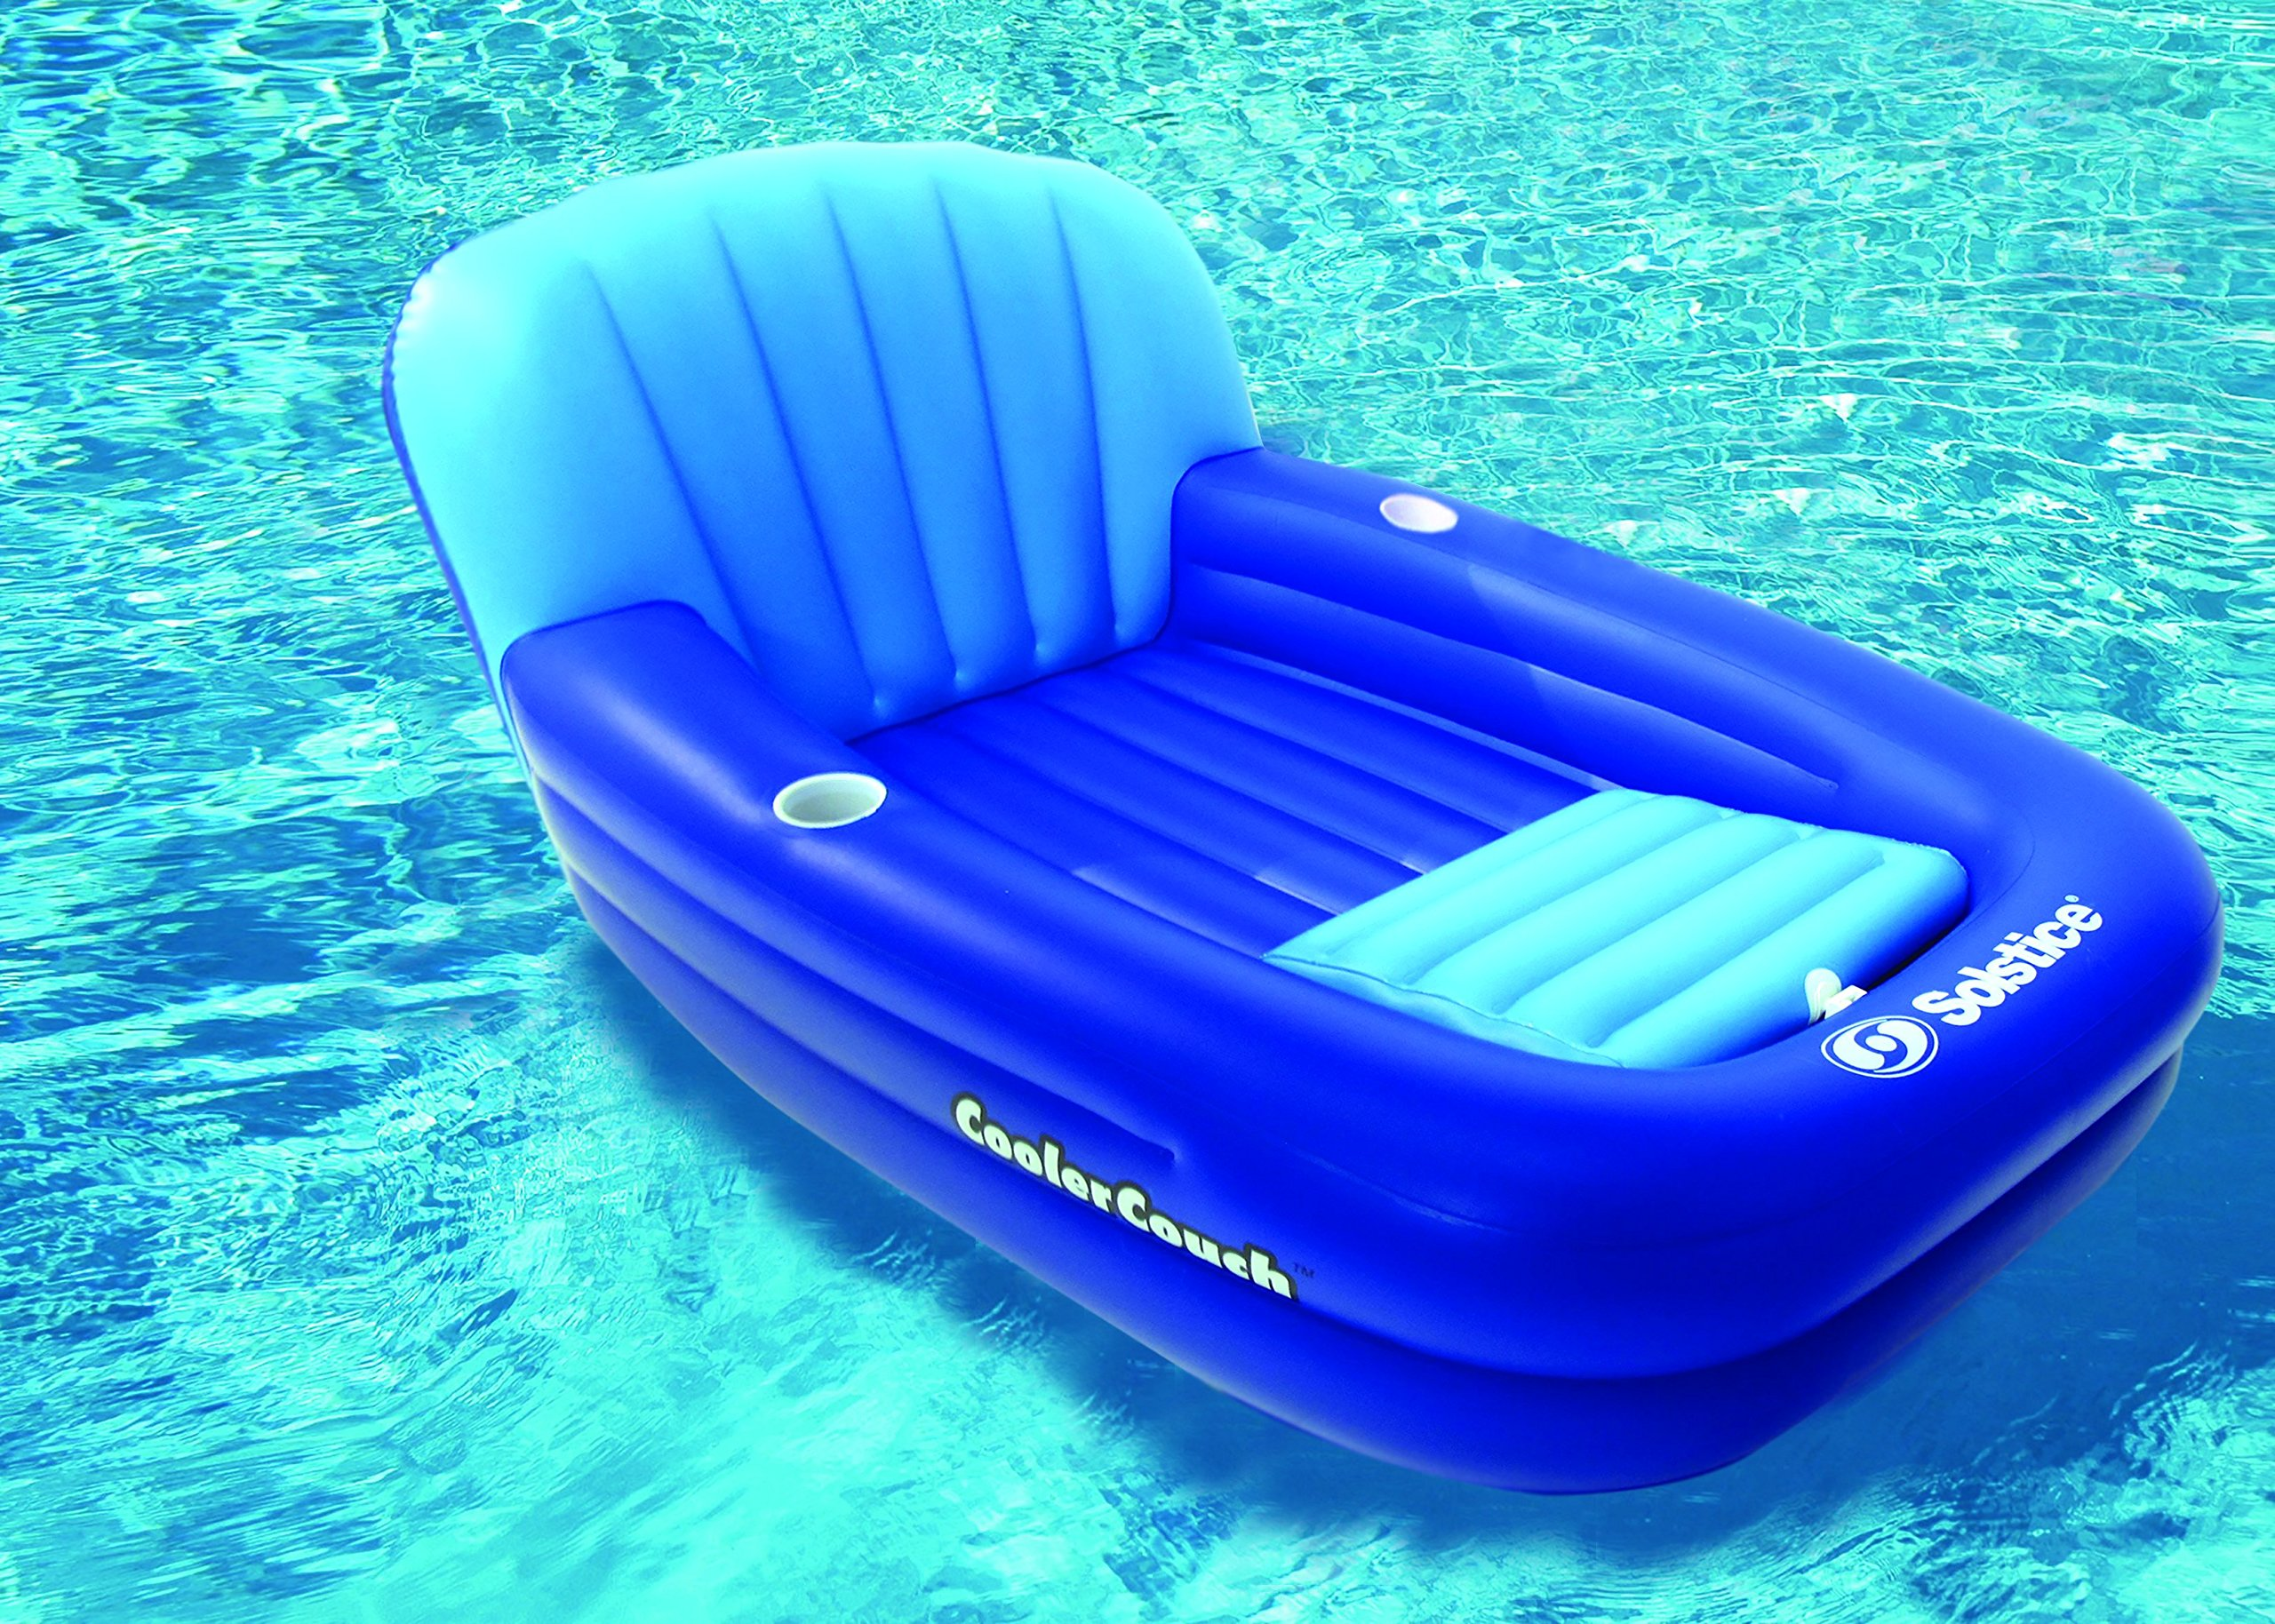 Solstice by Swimline Cooler Couch Inflatable Pool Lounger by Swimline (Image #3)